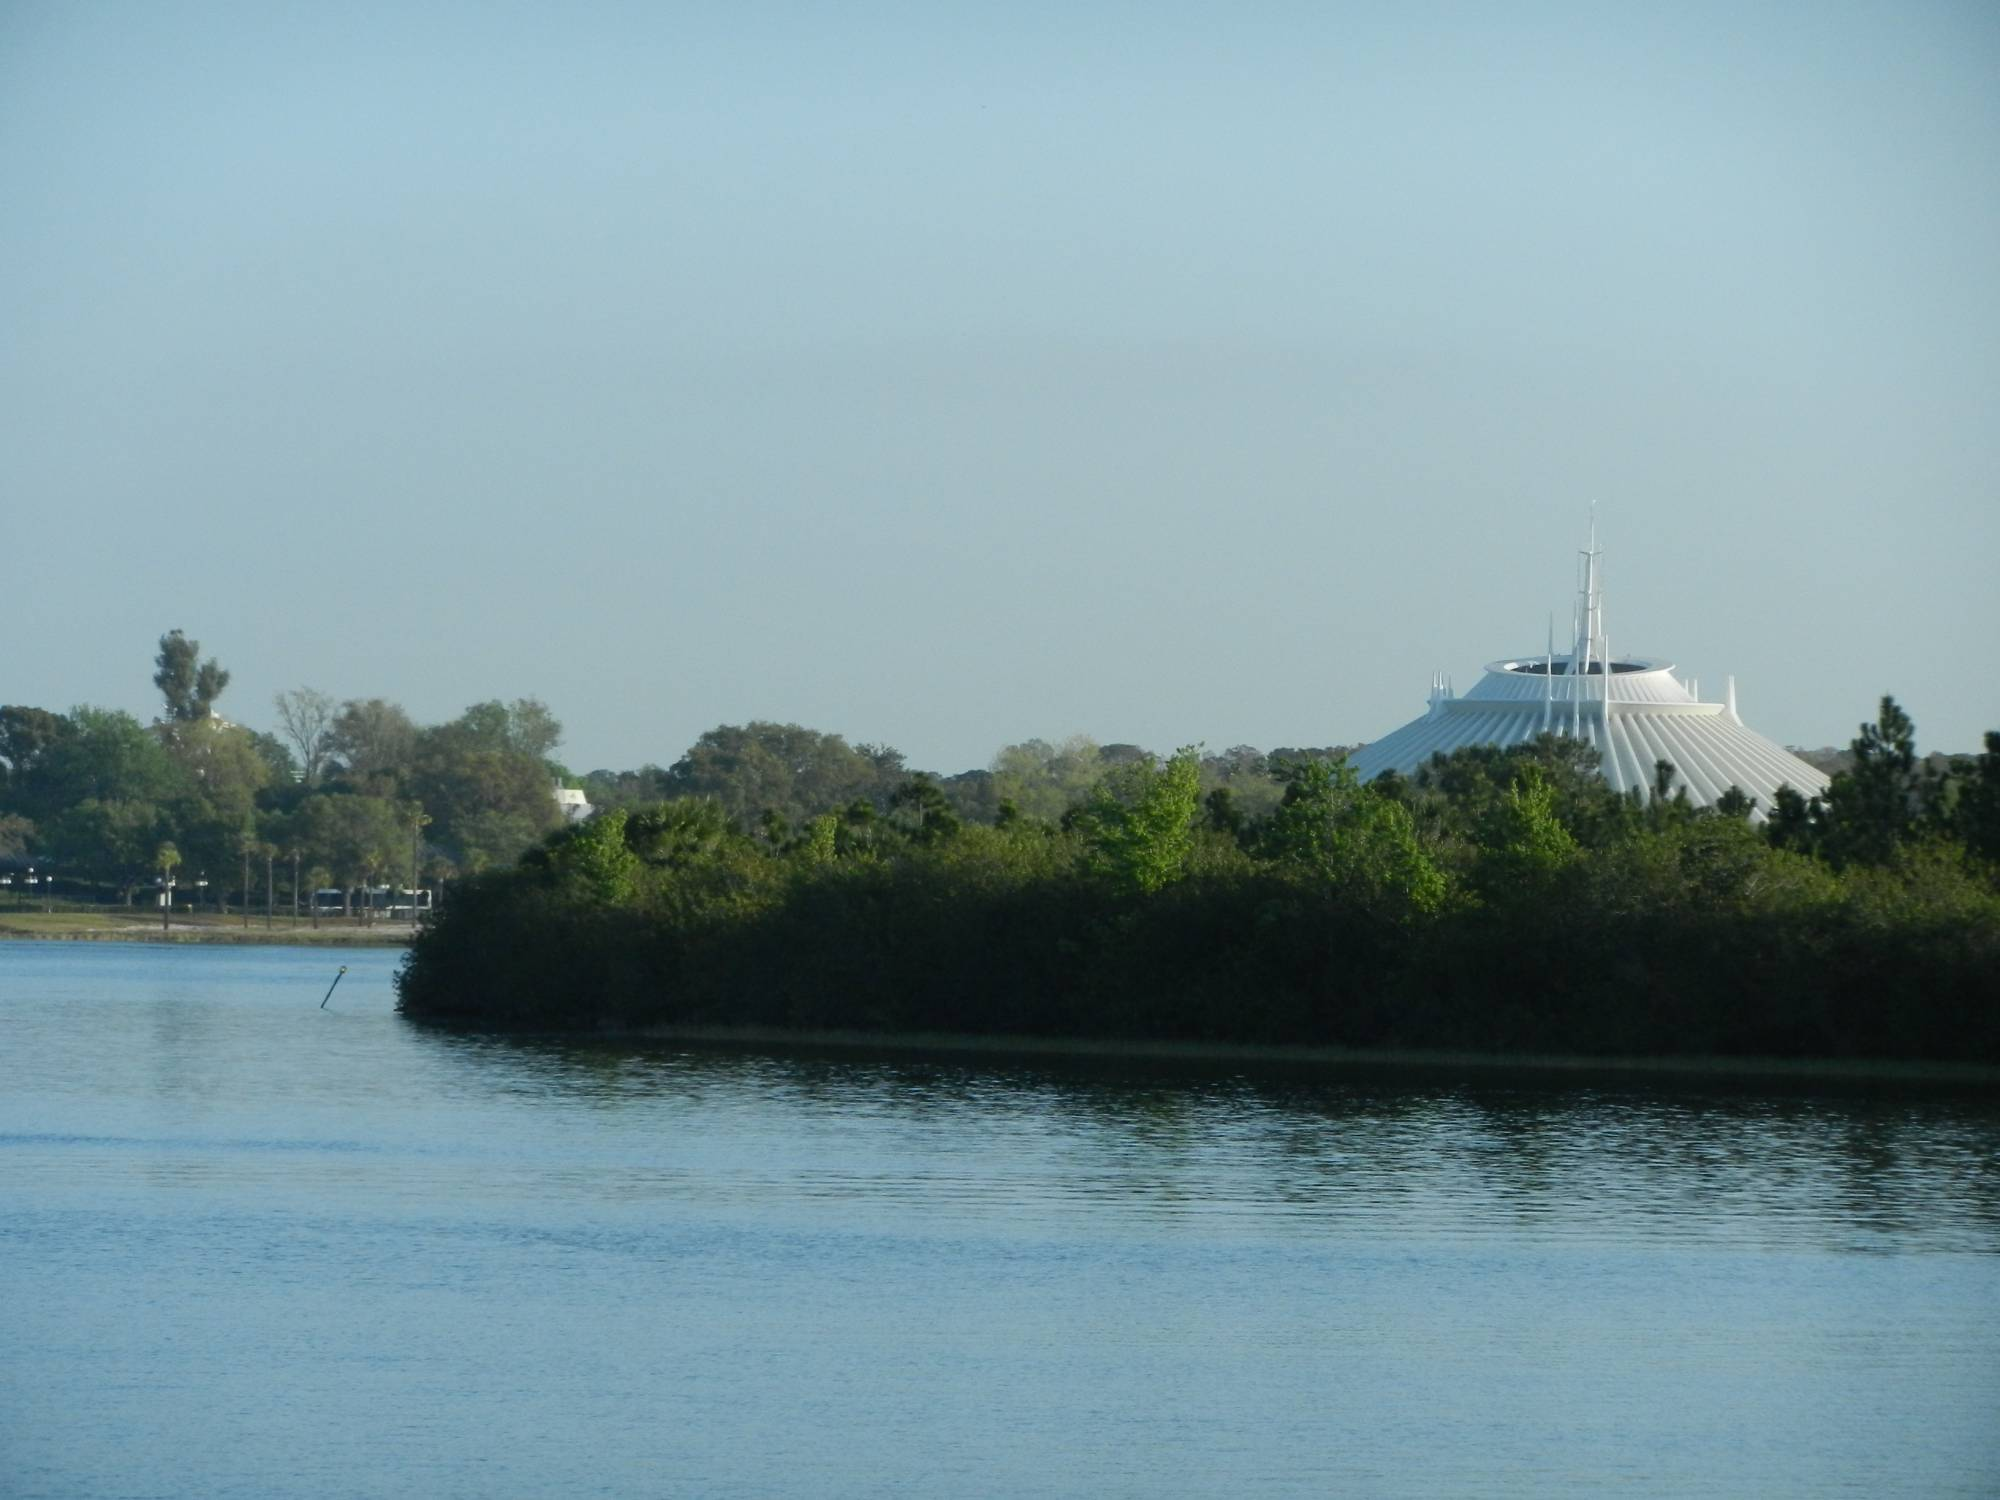 Waiting for the Ferry - View of Space Mountain